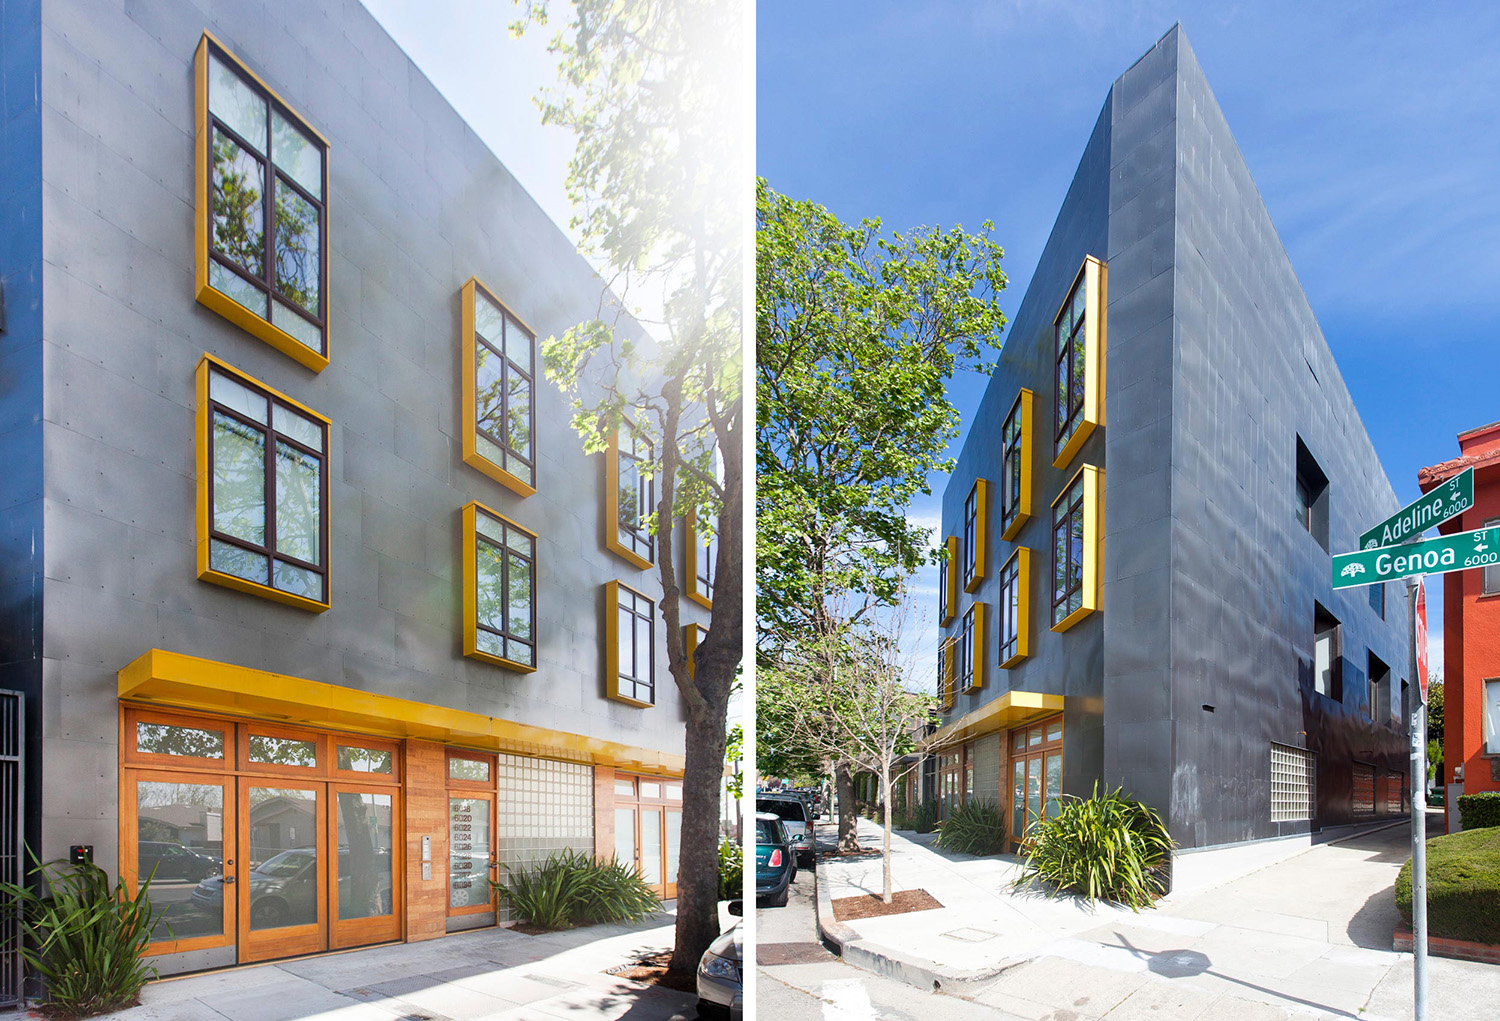 Wilson Associates  is a Developer,Design,Build family run firm. This is an apartment building they developed in Oakland, CA.